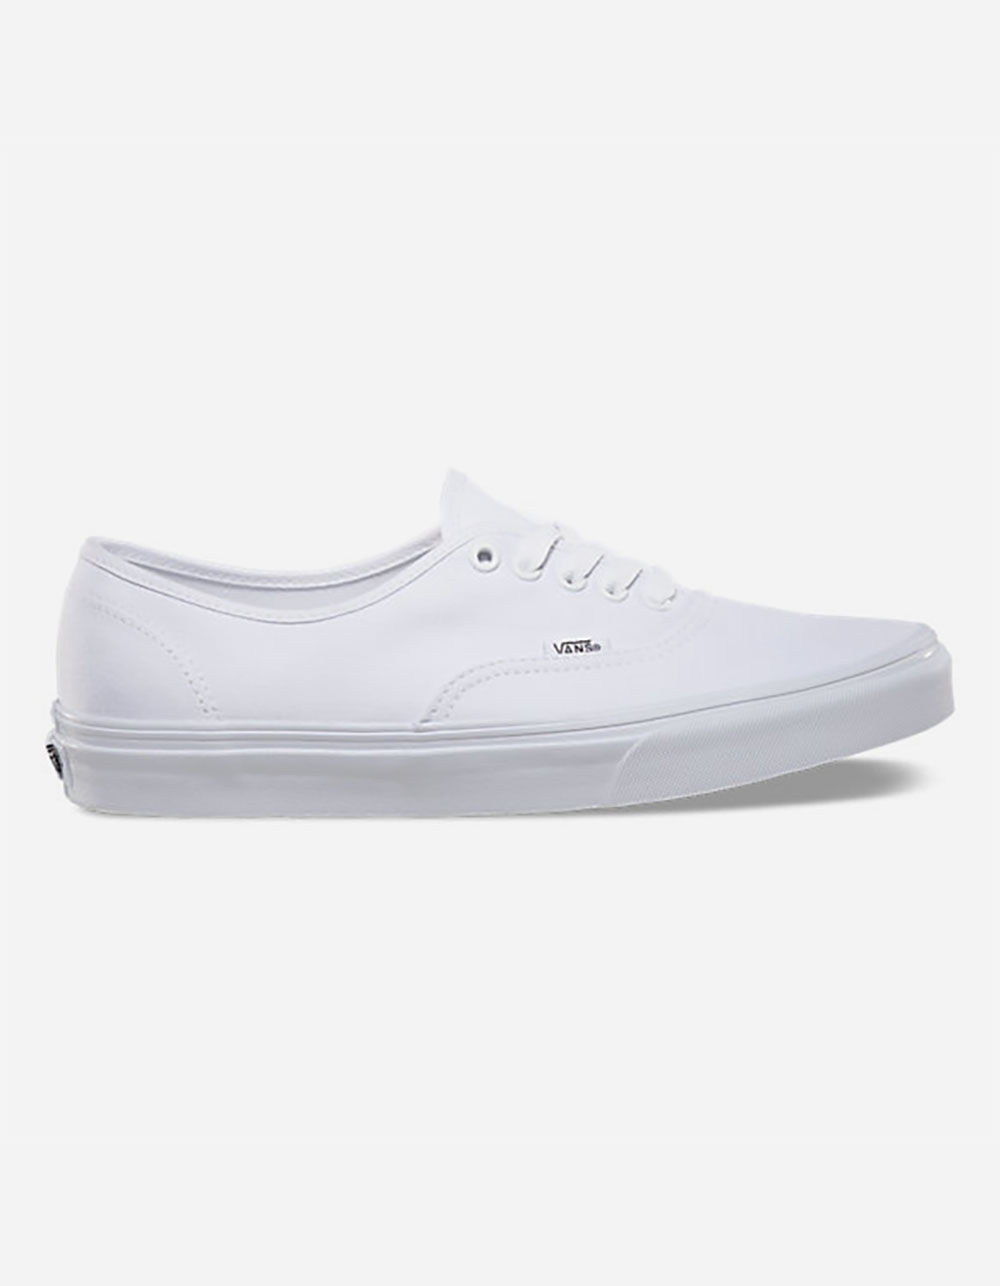 VANS Authentic True White Shoes